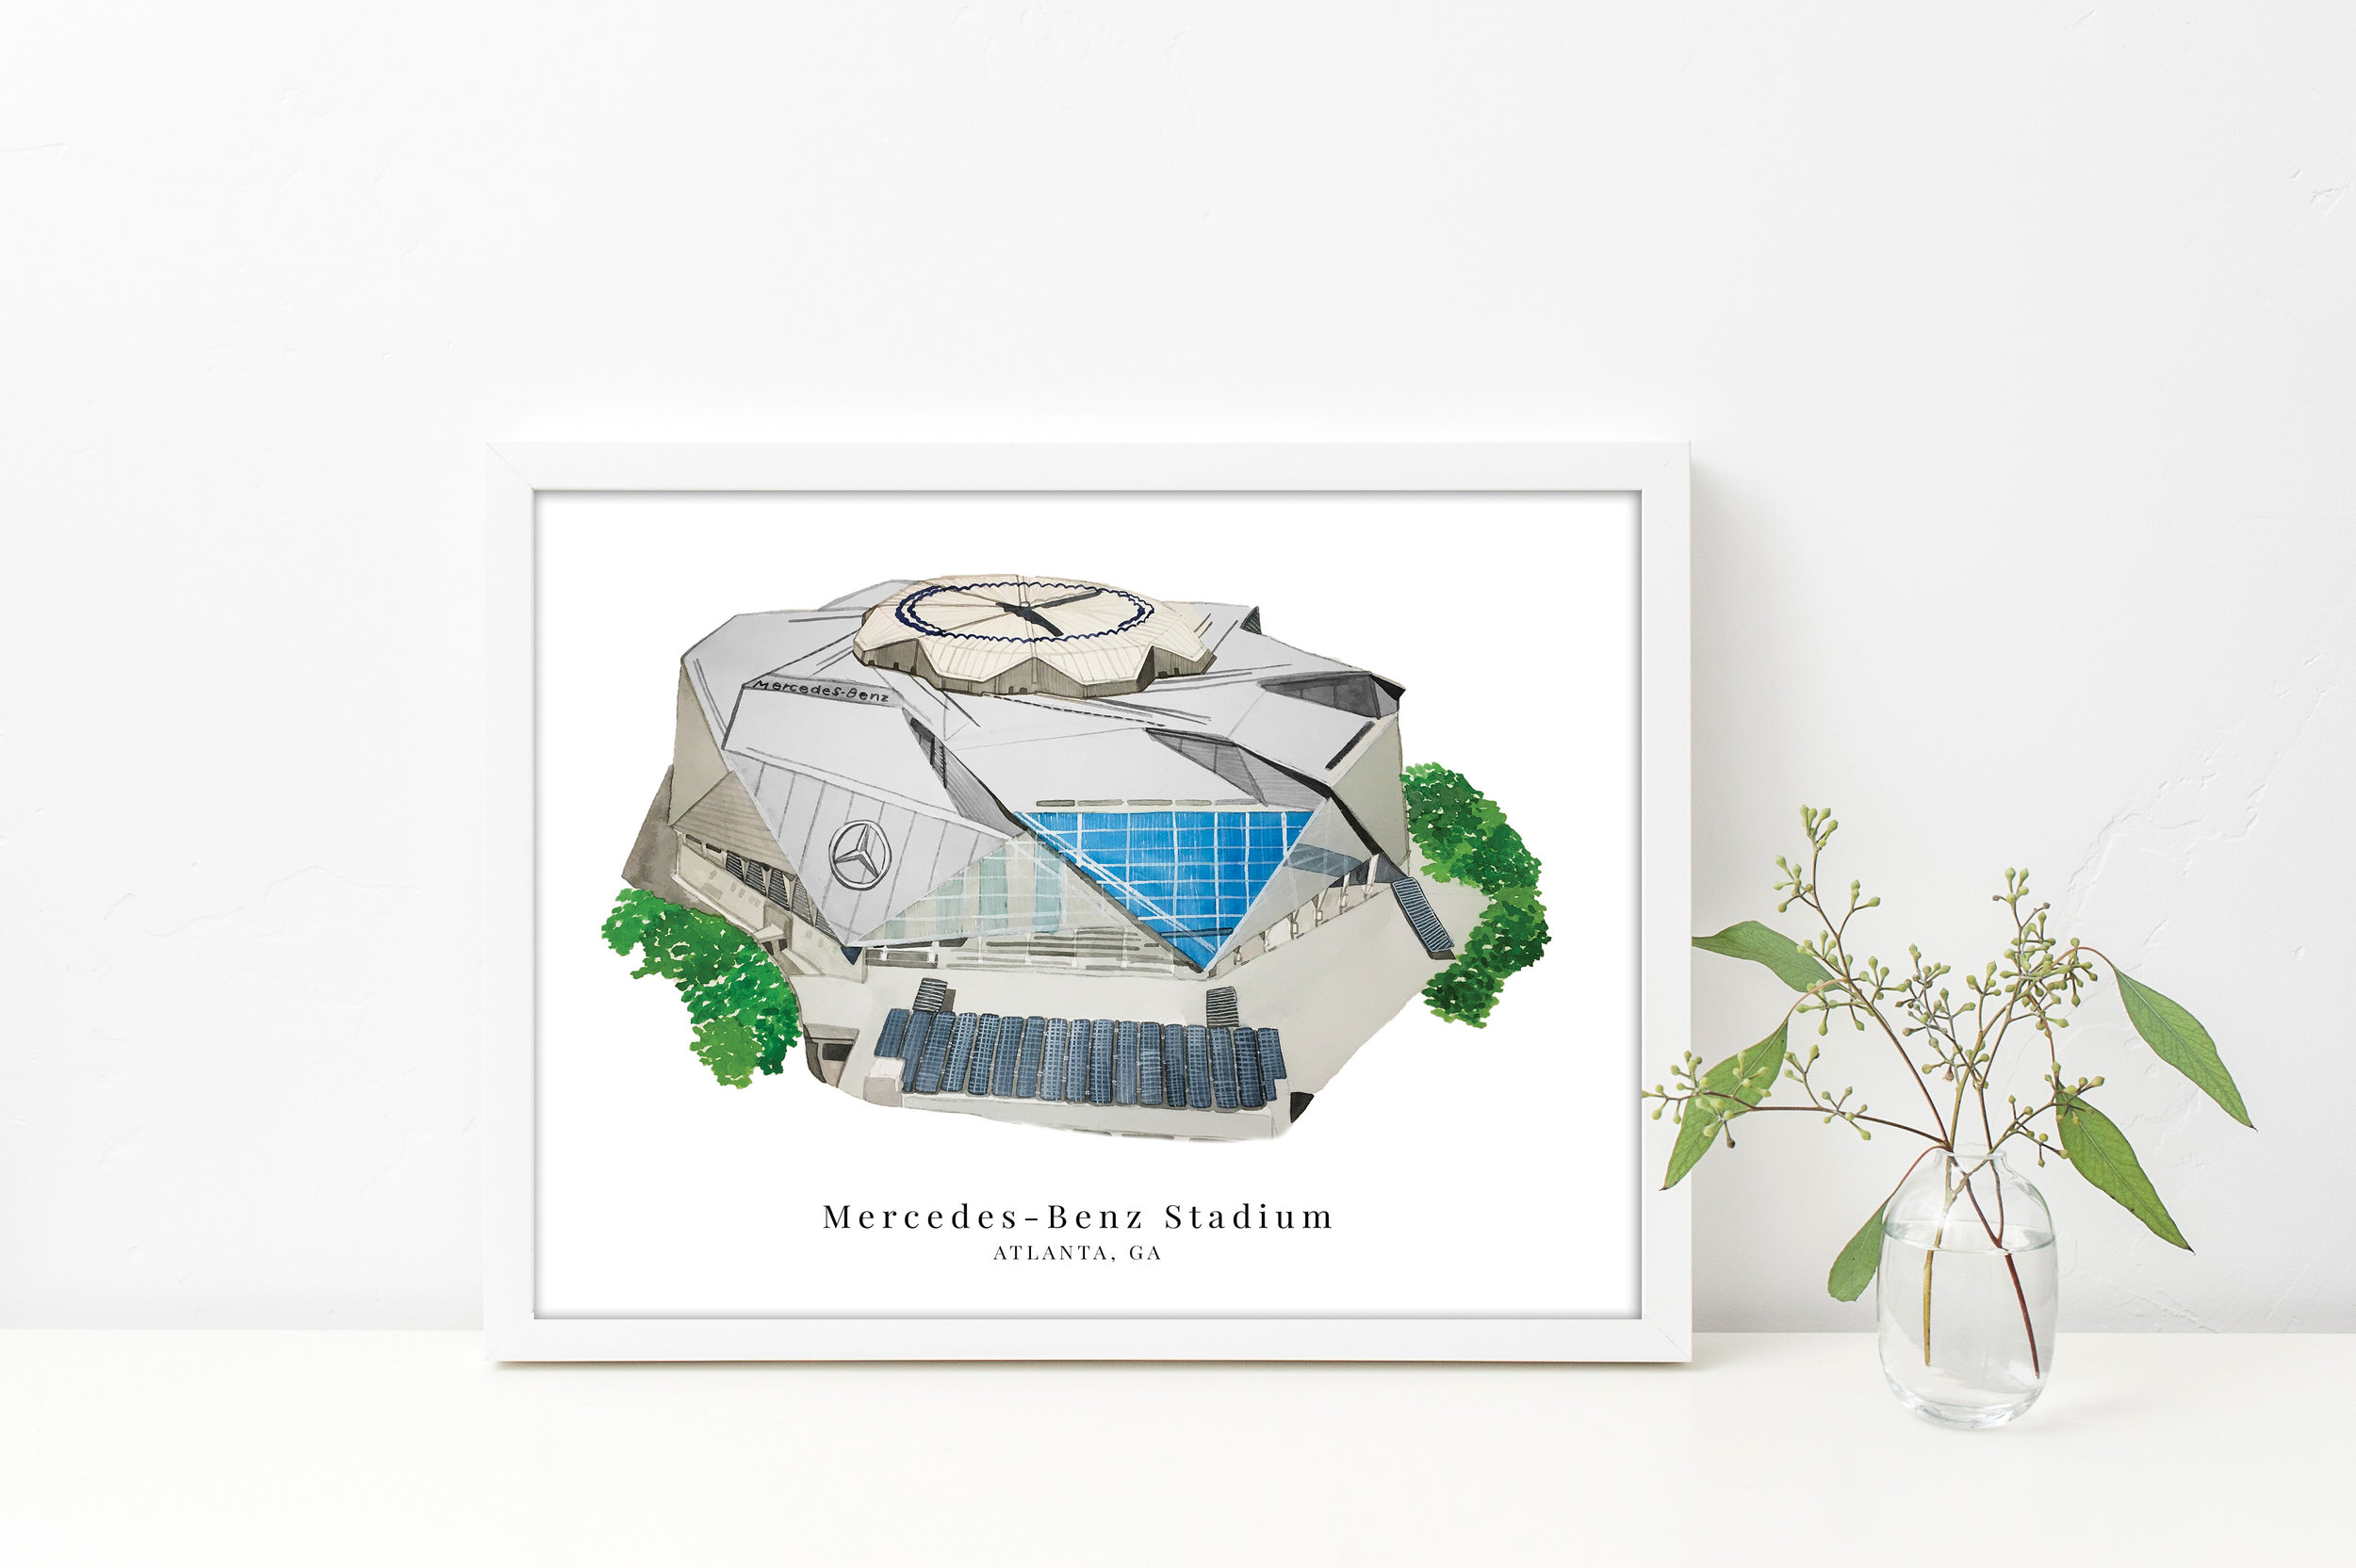 The Stadium Collection - Sanford, Auburn, Mercedes-Benz, Memphis, and More